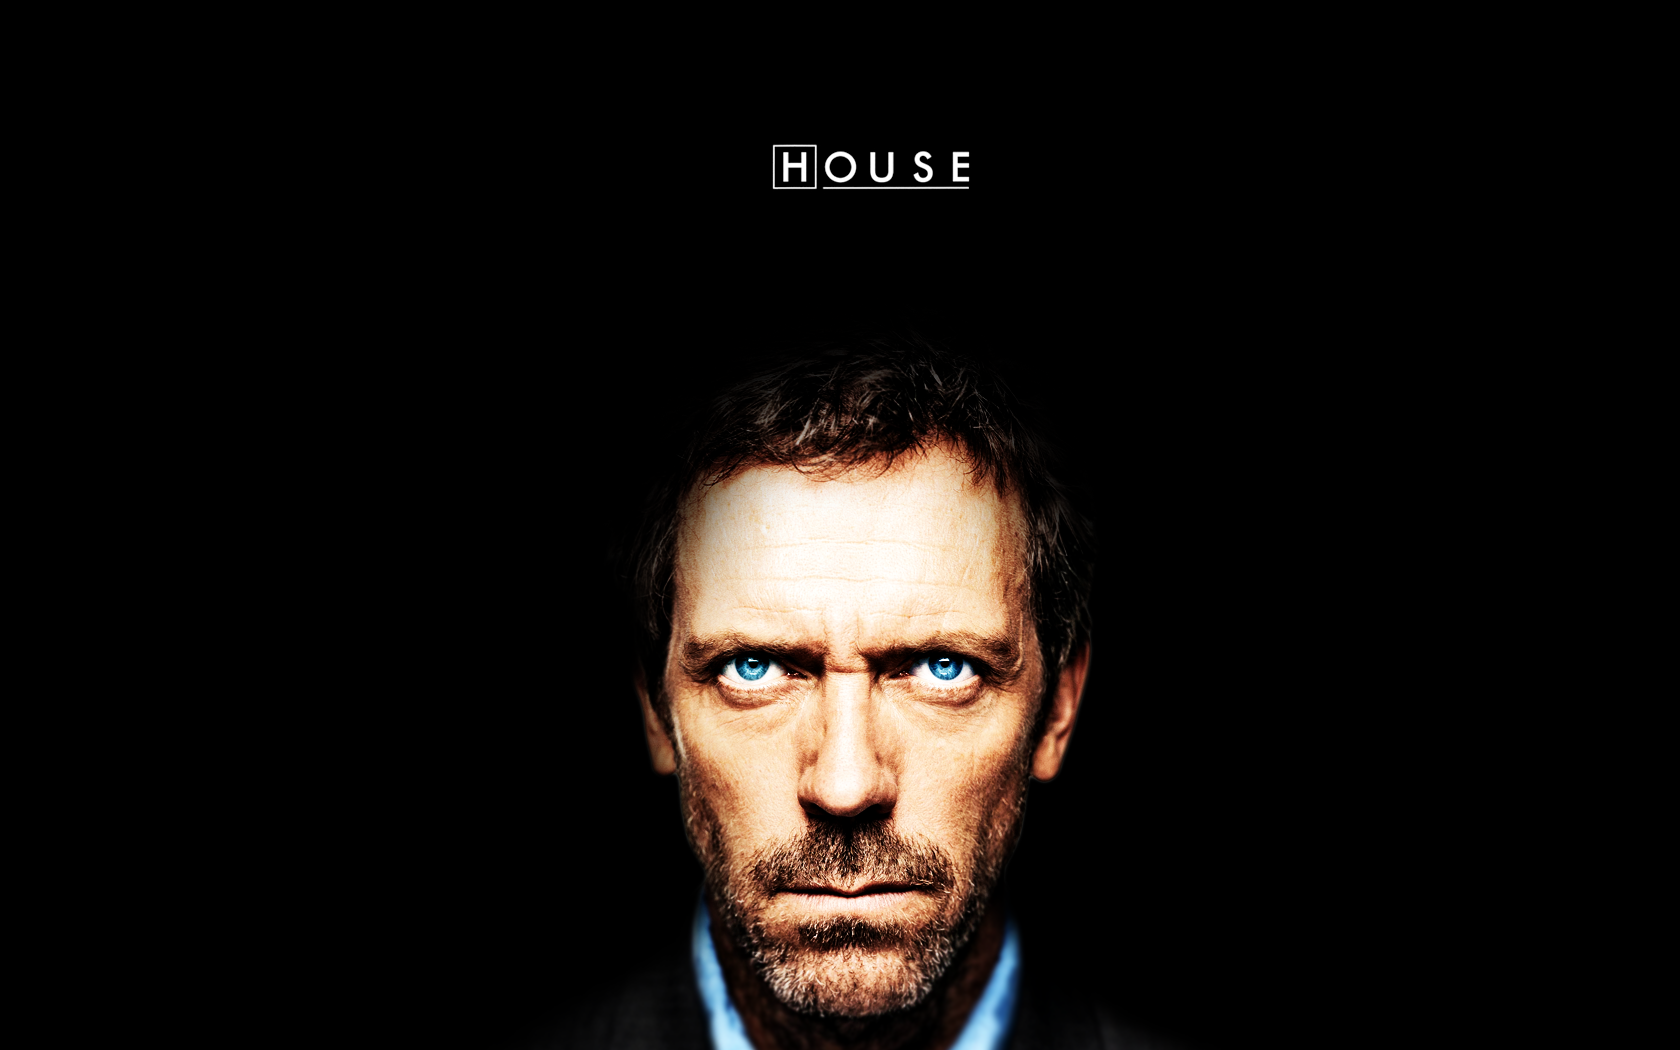 Wallpapers For House